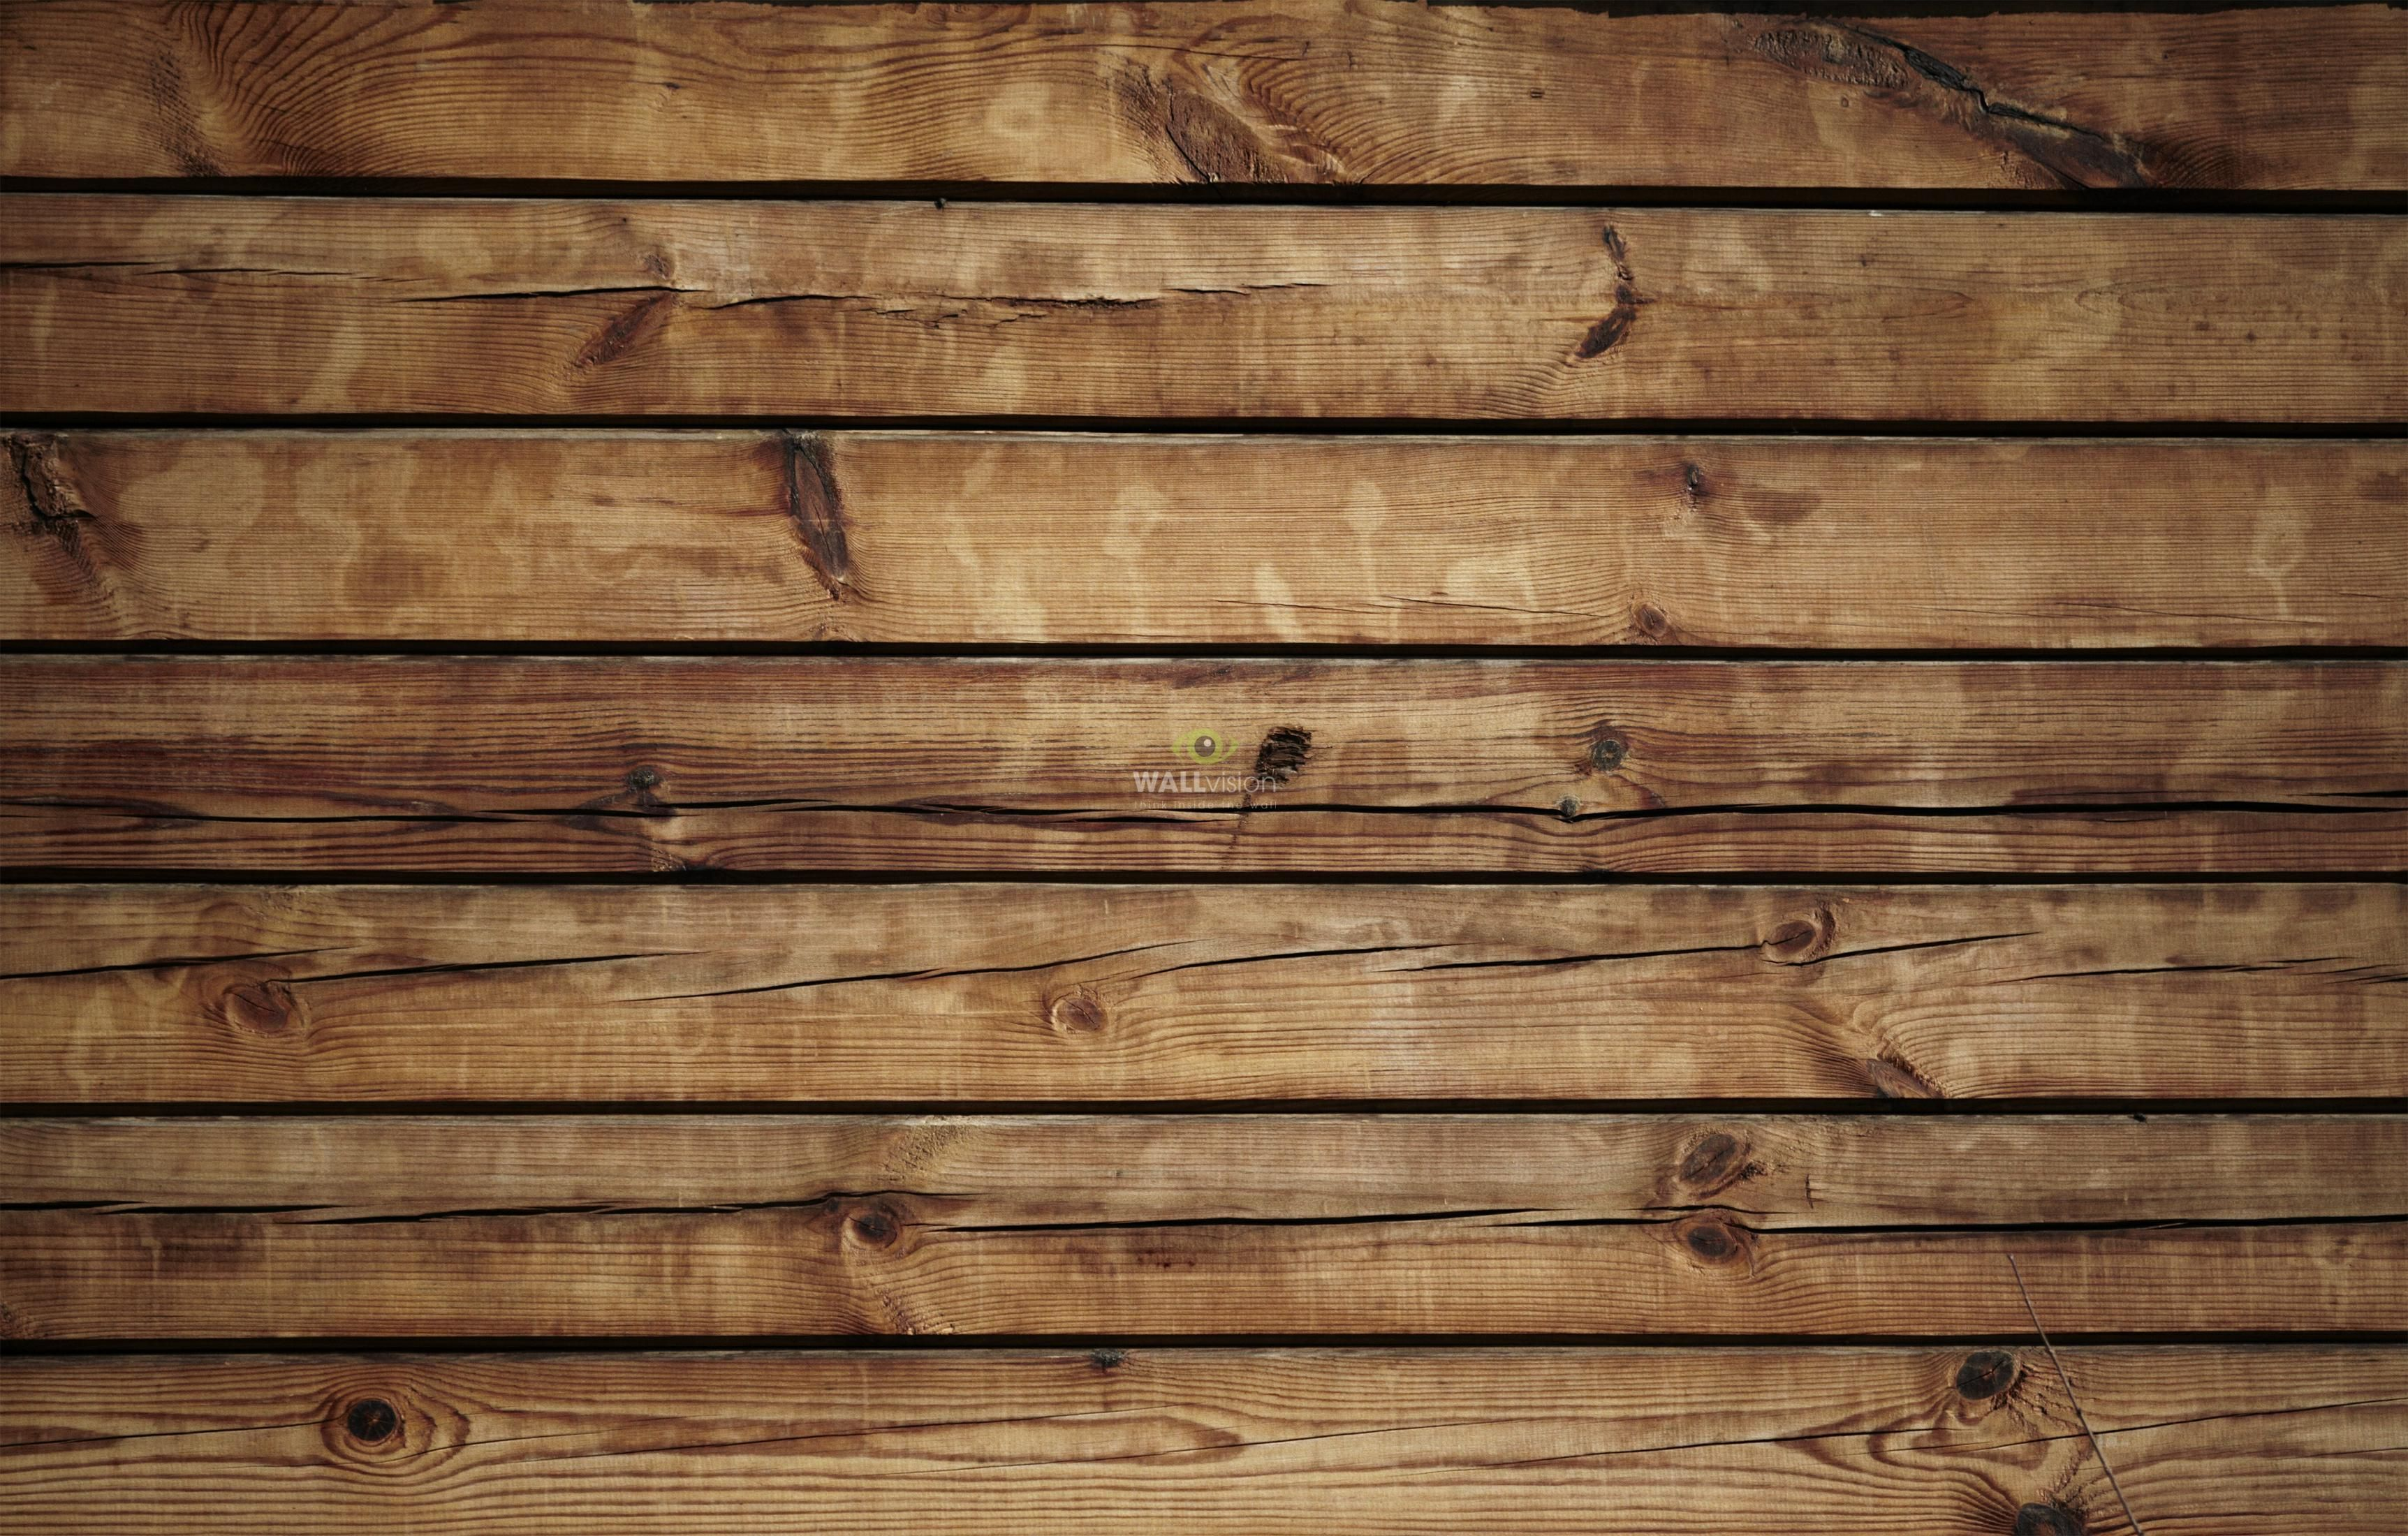 Image For Wood Wallpaper Background Hd Download Wood Texture Old Wood Texture Wood Plank Wallpaper